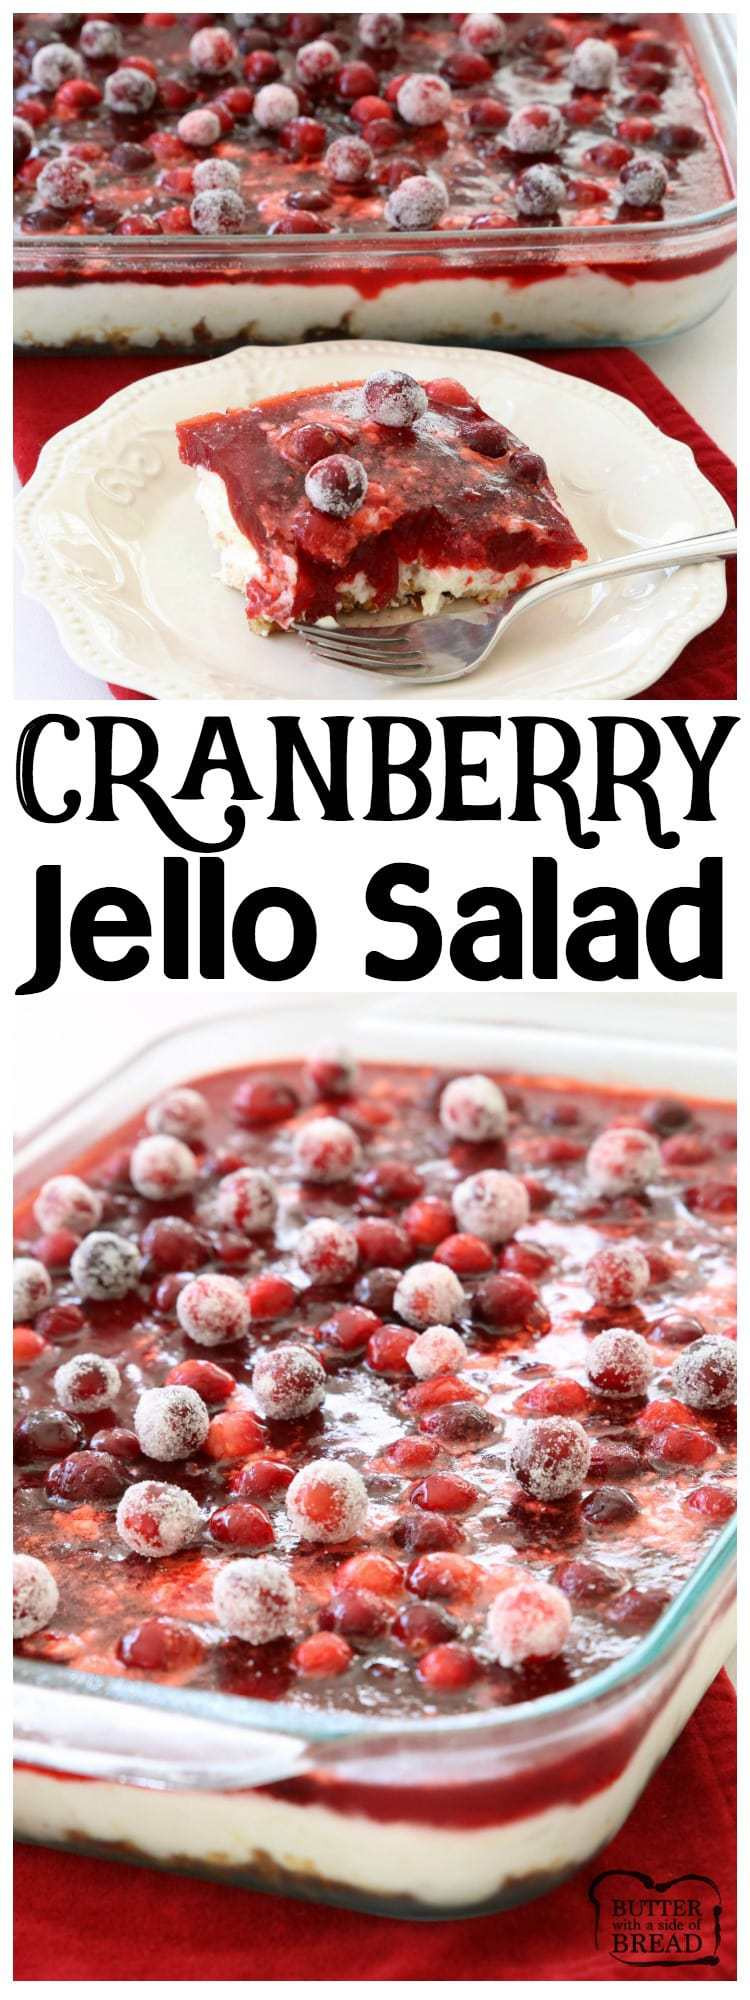 Jello Salads For Thanksgiving Dinner  CRANBERRY JELLO SALAD Butter with a Side of Bread